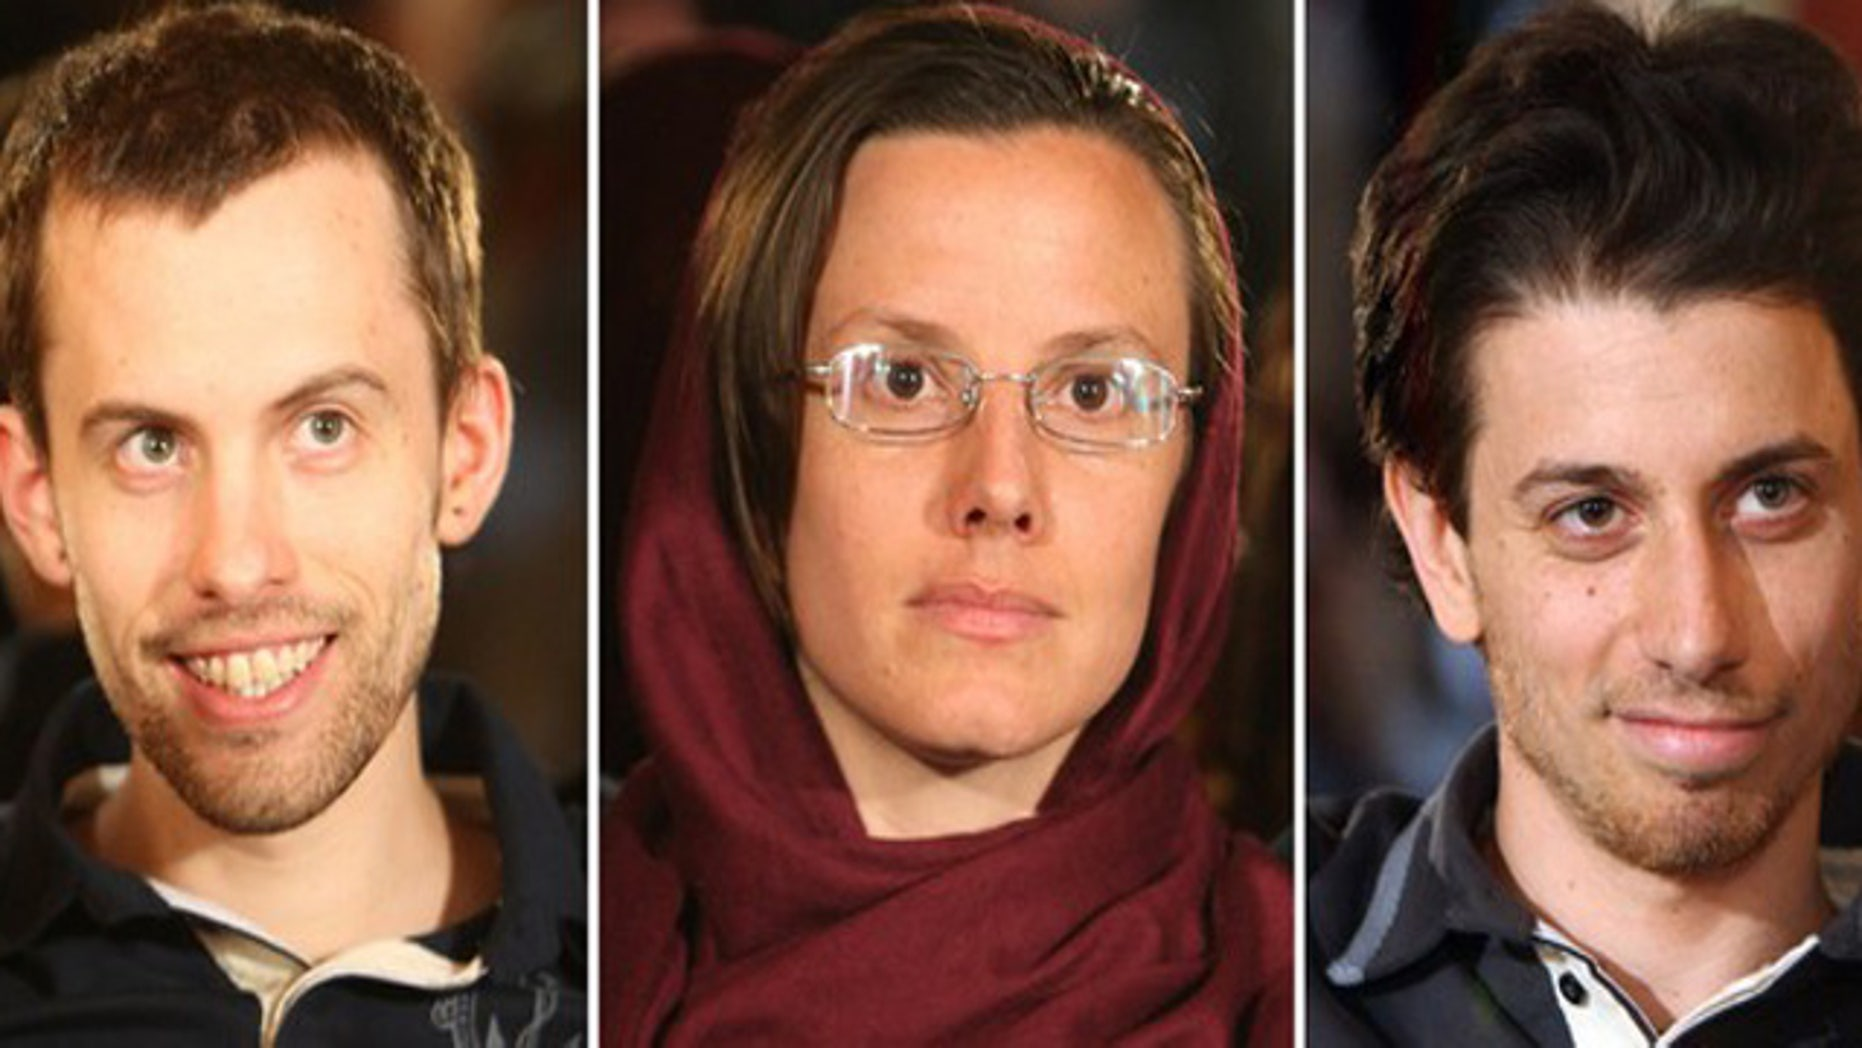 May 20: Detained U.S. hikers (L-R) Shane Bauer, Sarah Shourd and Josh Fattal during a meeting with their mothers in Tehran.